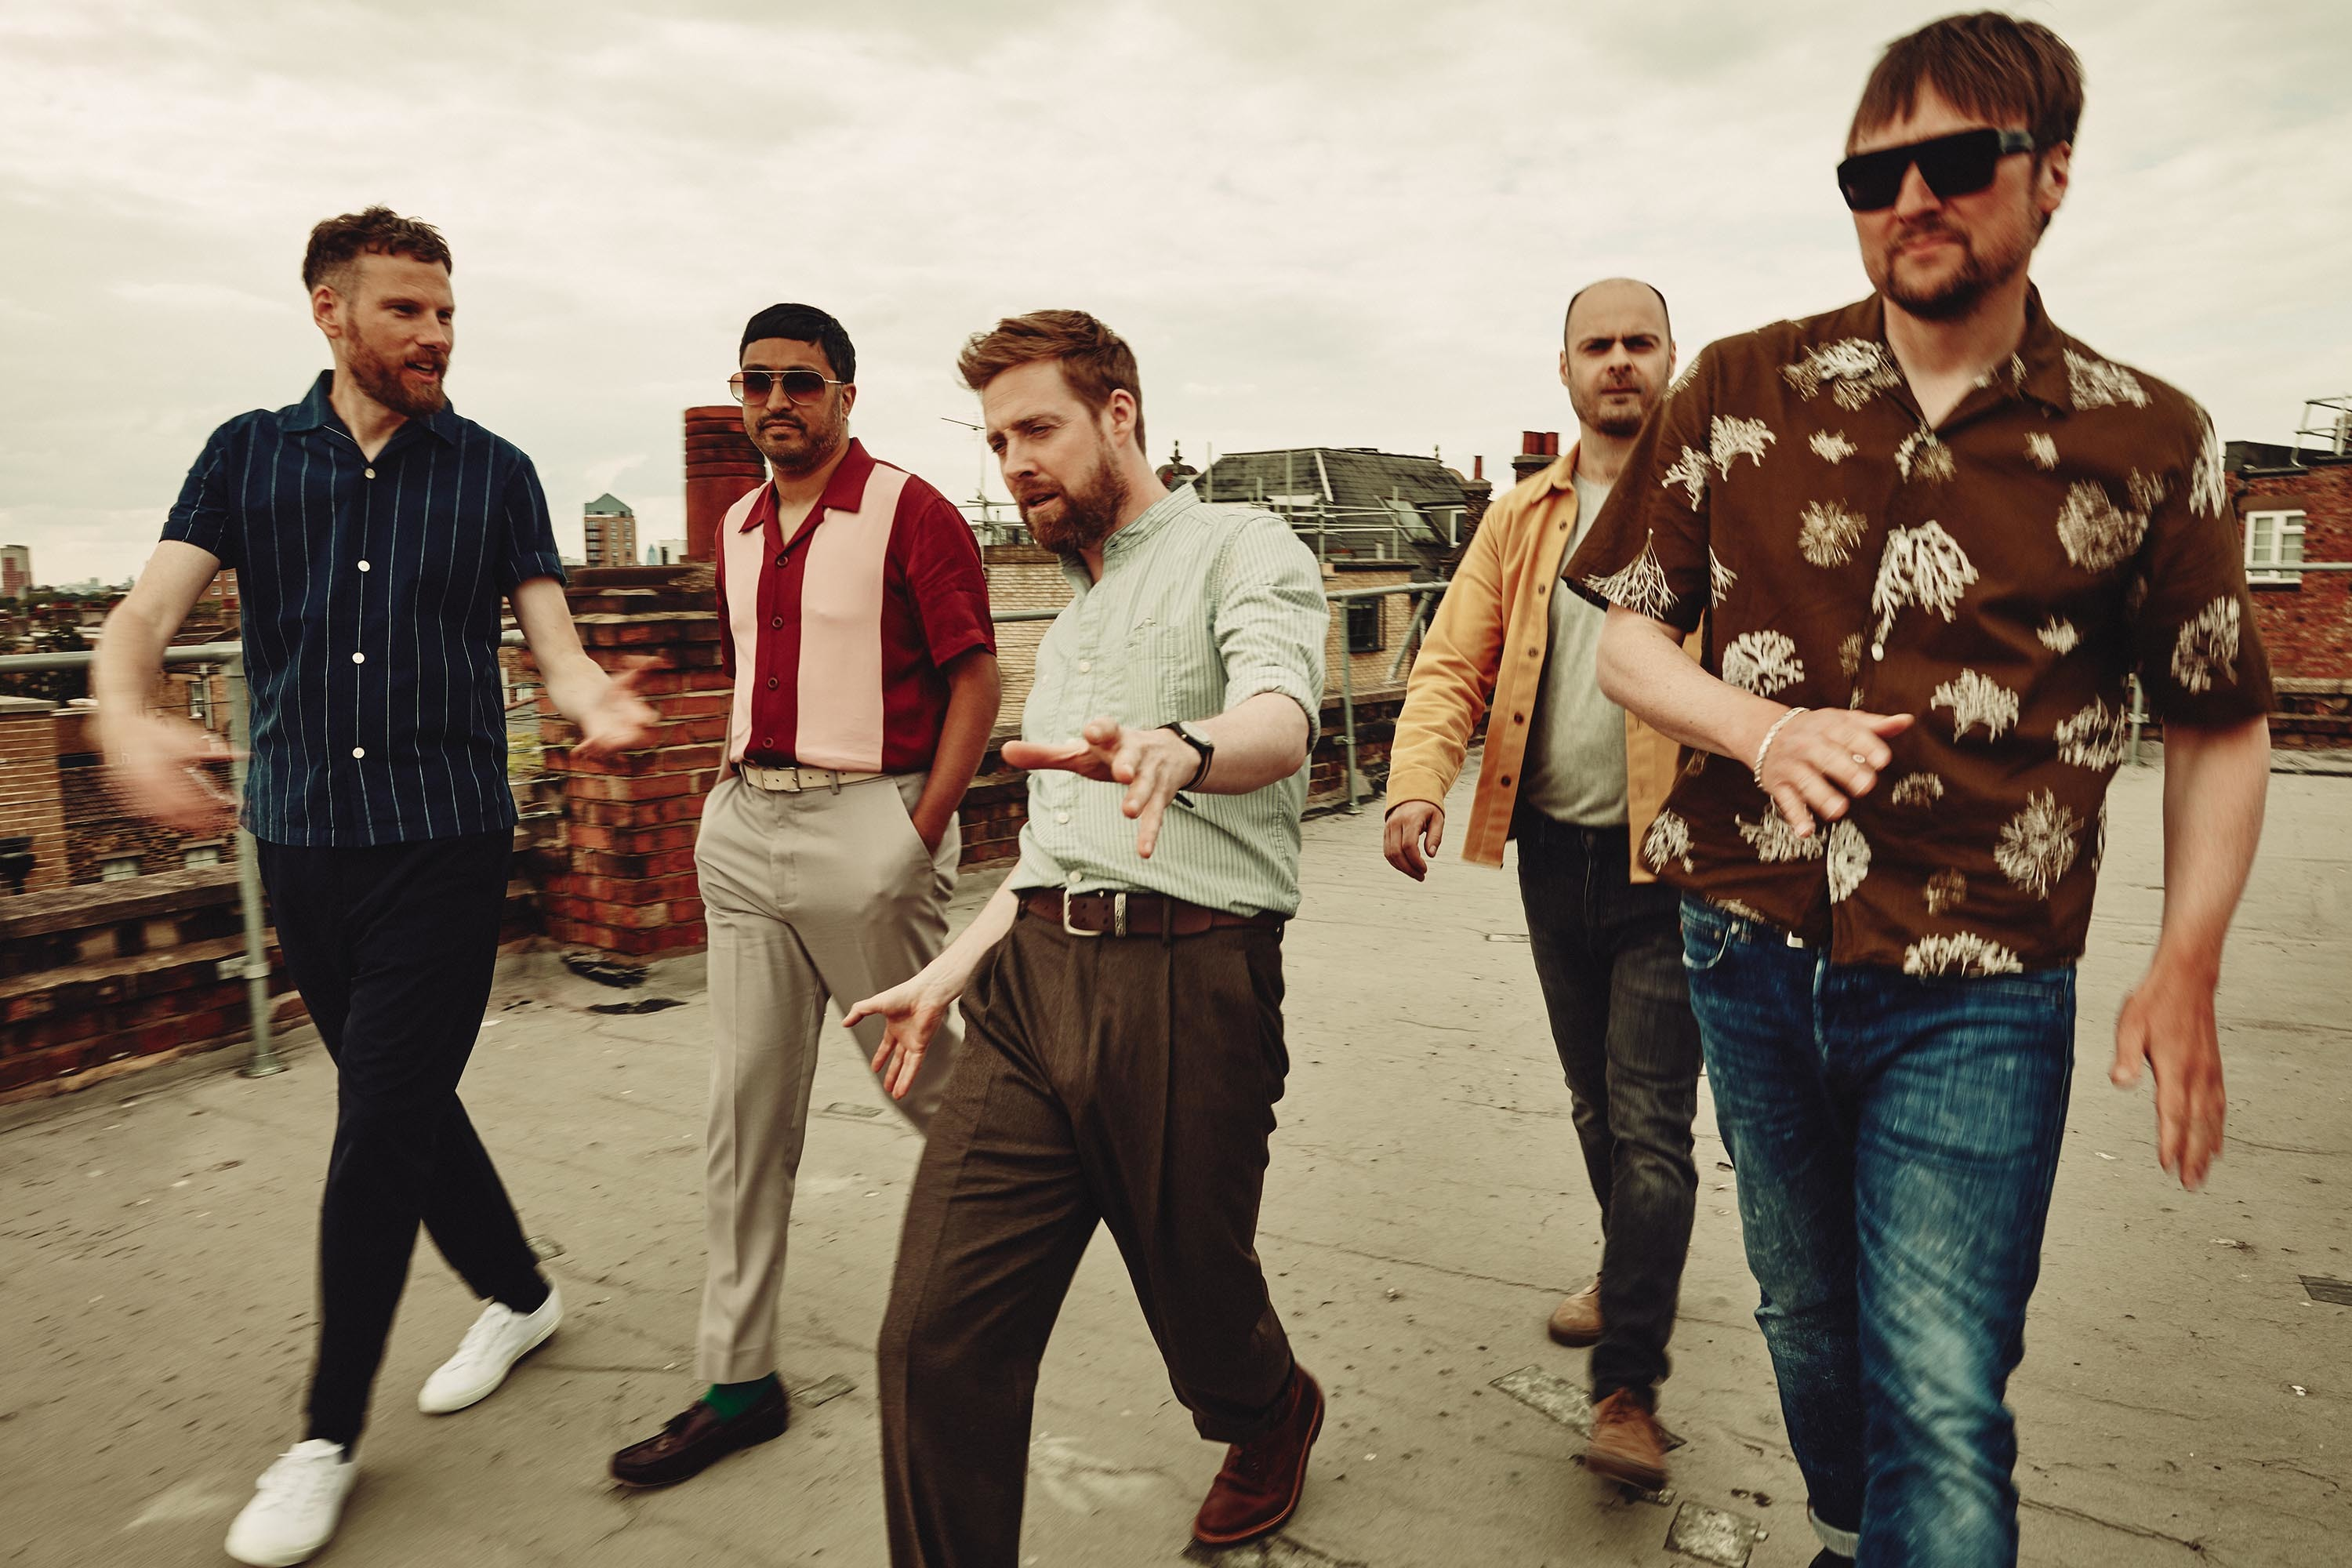 Kaiser Chiefs announce new album 'Duck', share track 'Record Collection'